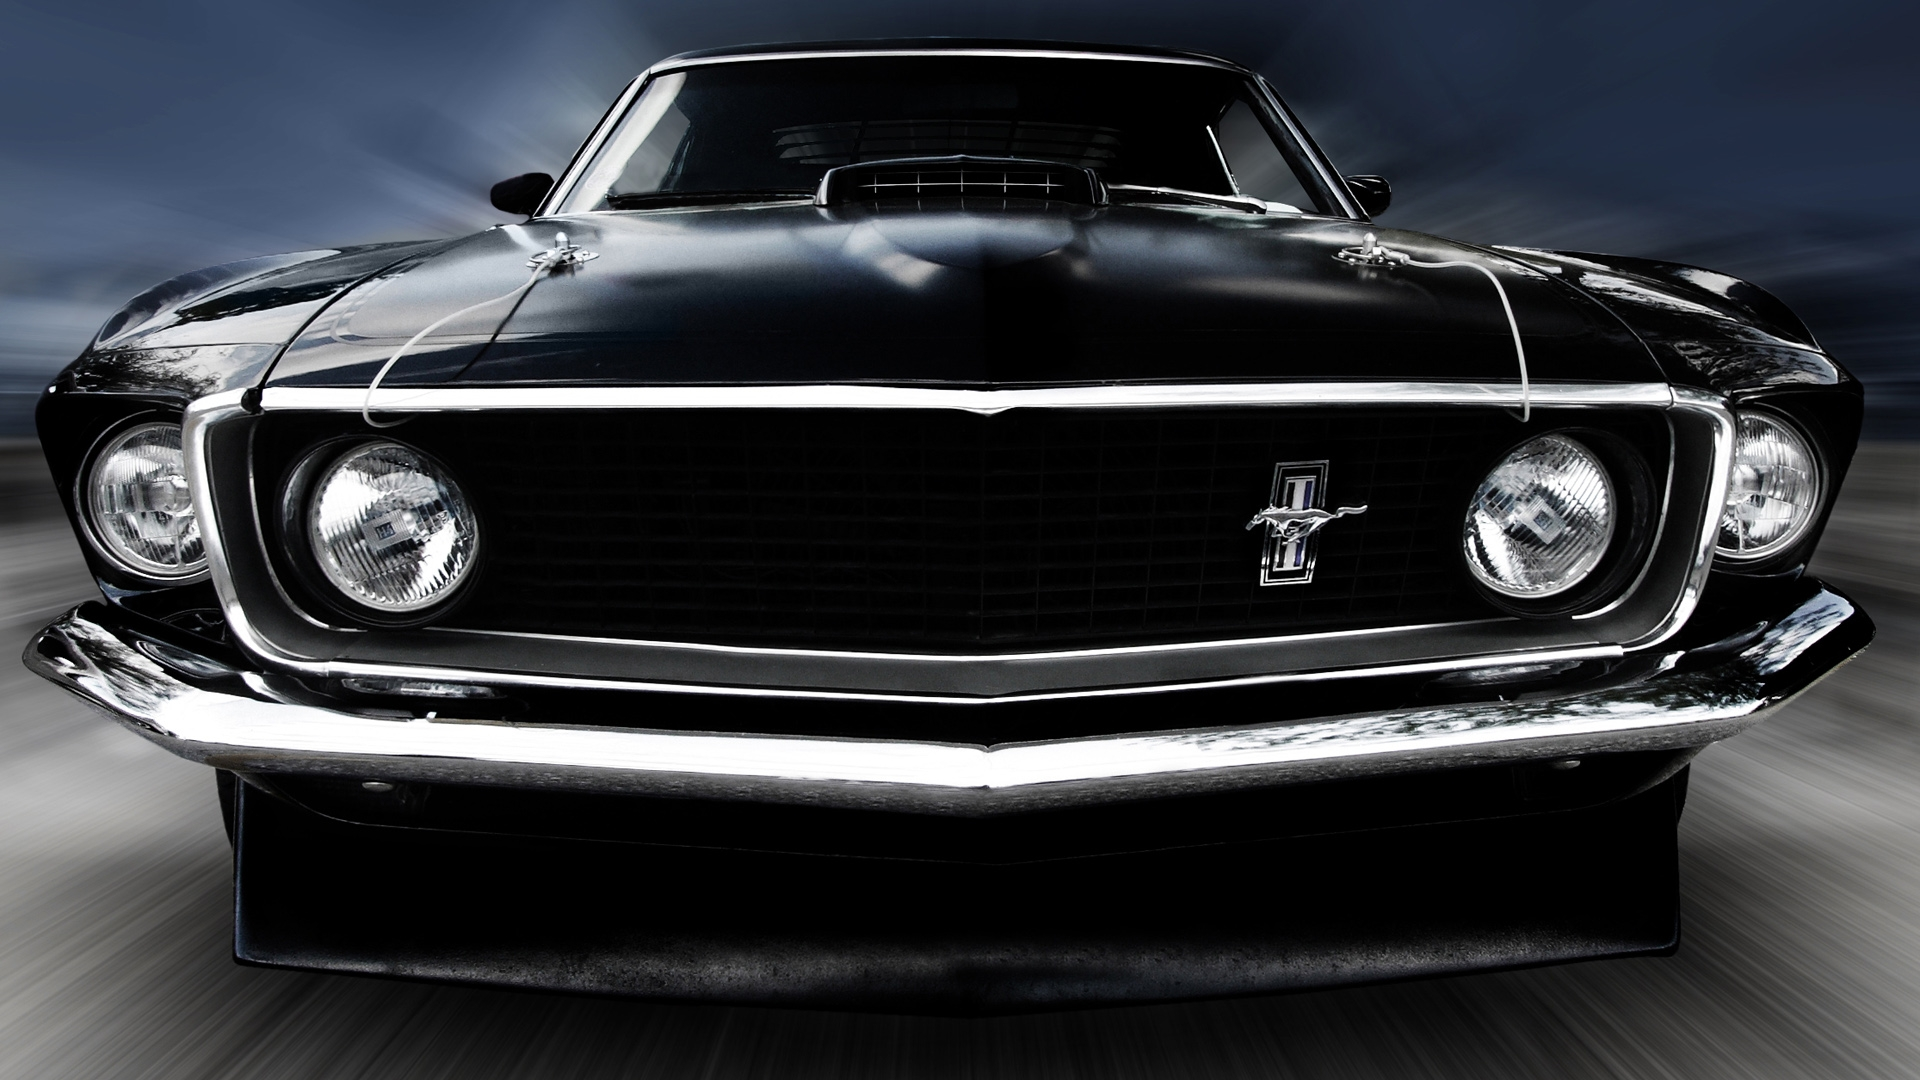 HD Wallpapers HD 1080p Desktop Wallpapers 1969 ford mustang 1920x1080